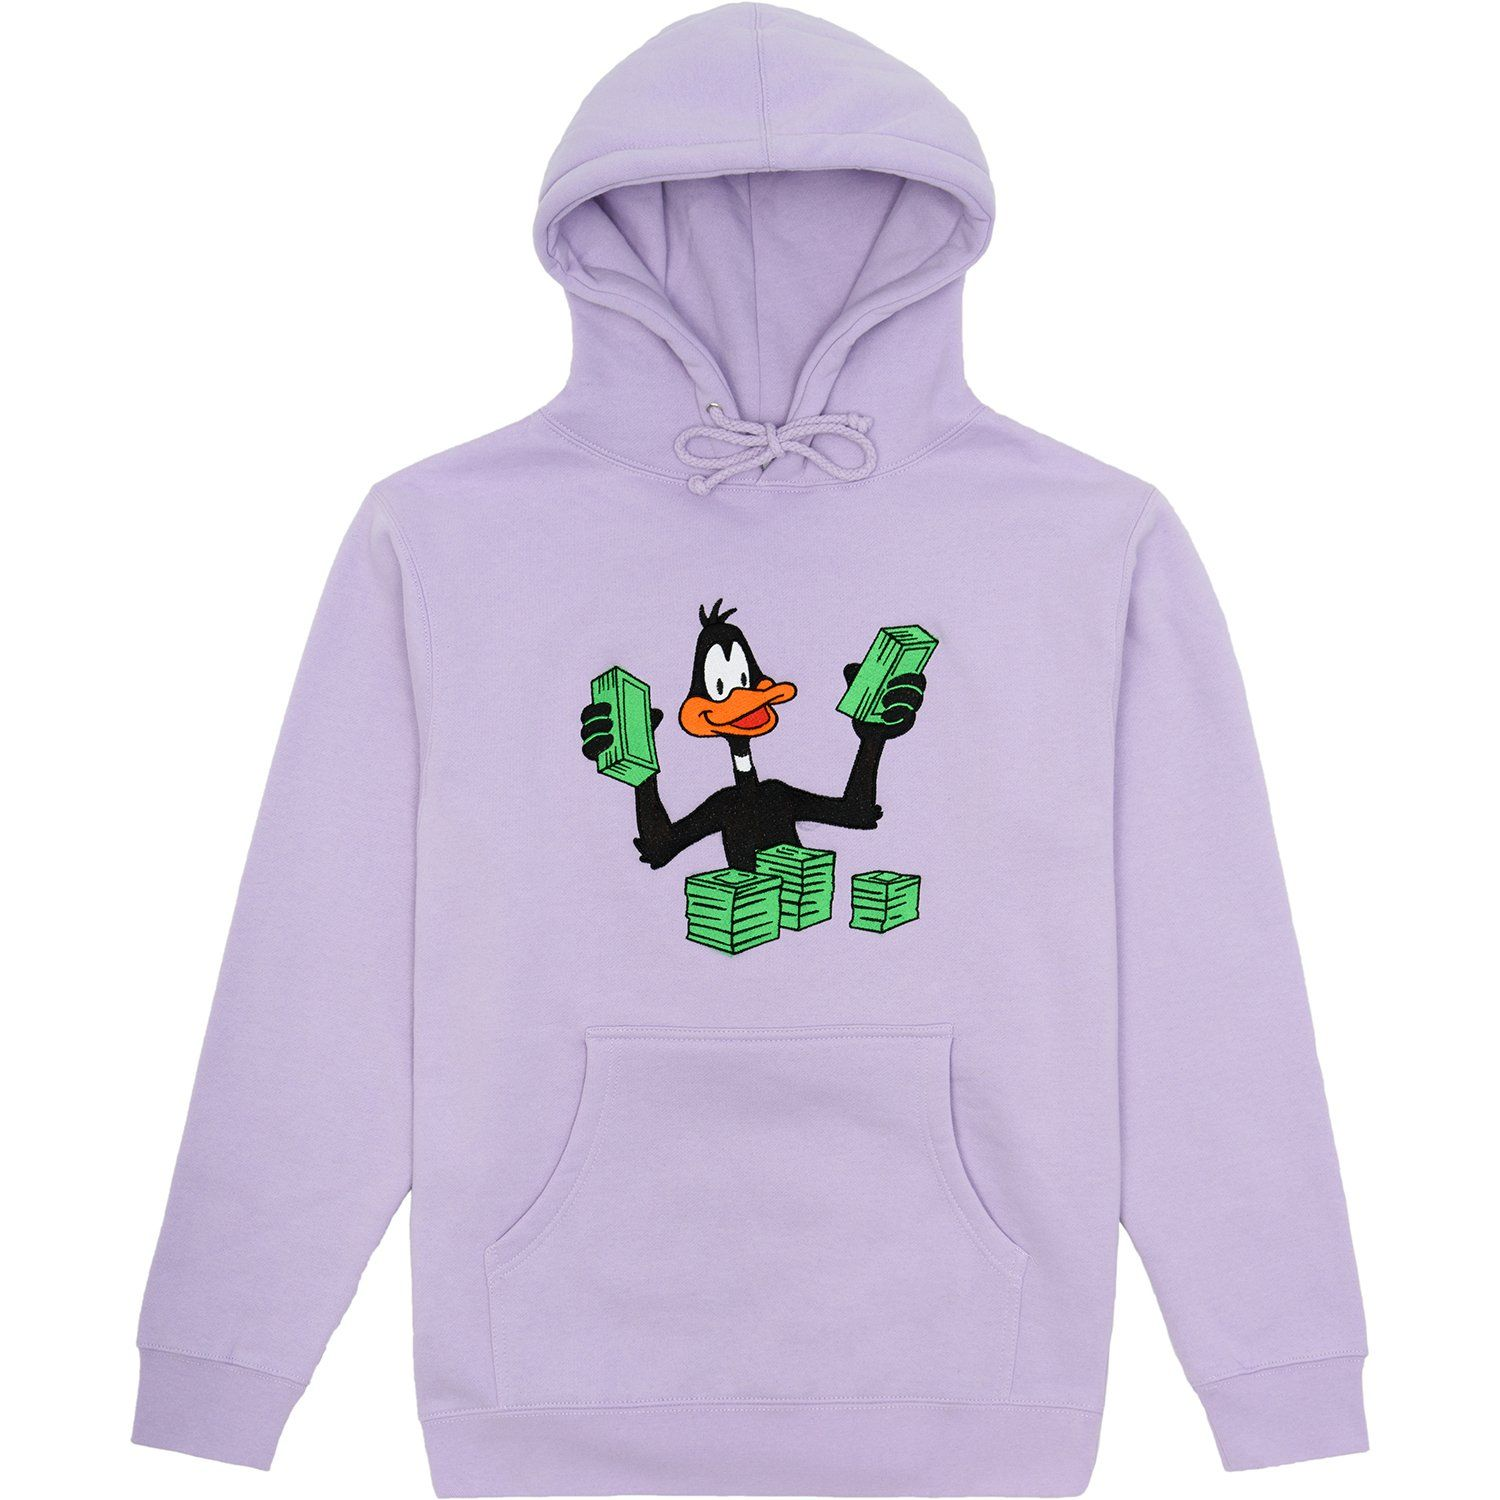 Daffy Duck Stacking Money Hoodie | fits ☽ in 2019 | Hoodies